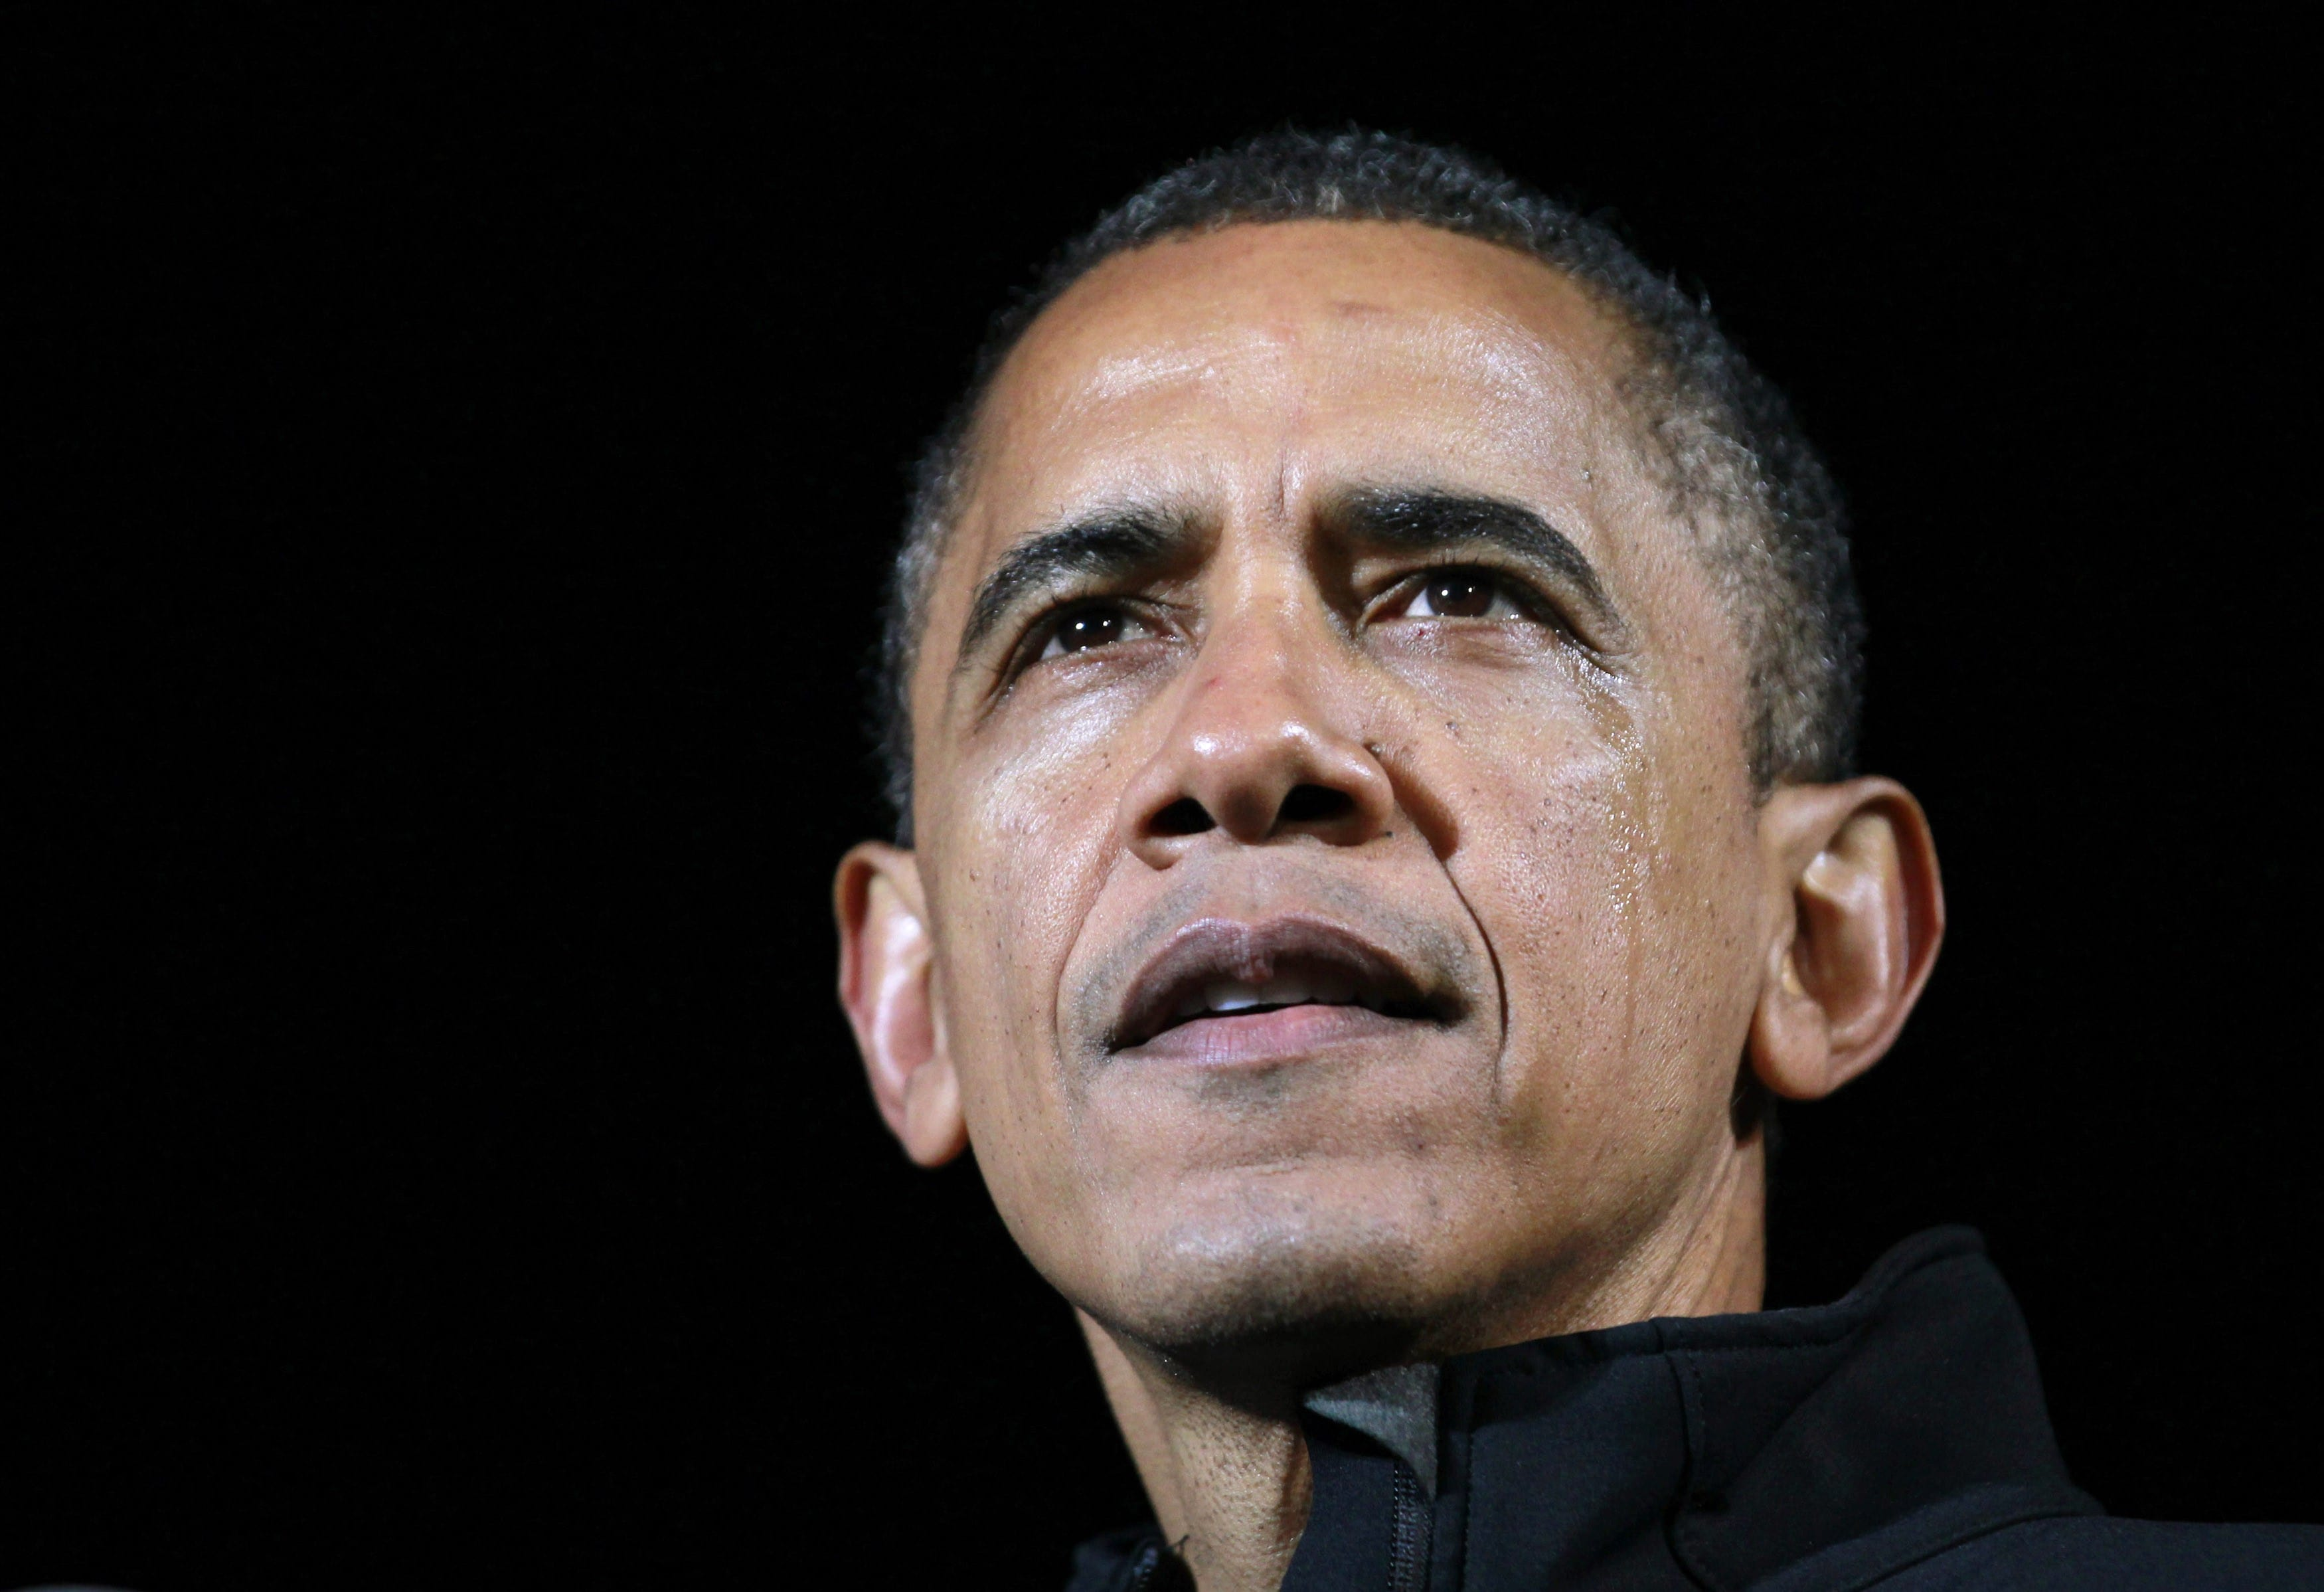 Pres. Obama Gets Teary During Final Rally In Iowa